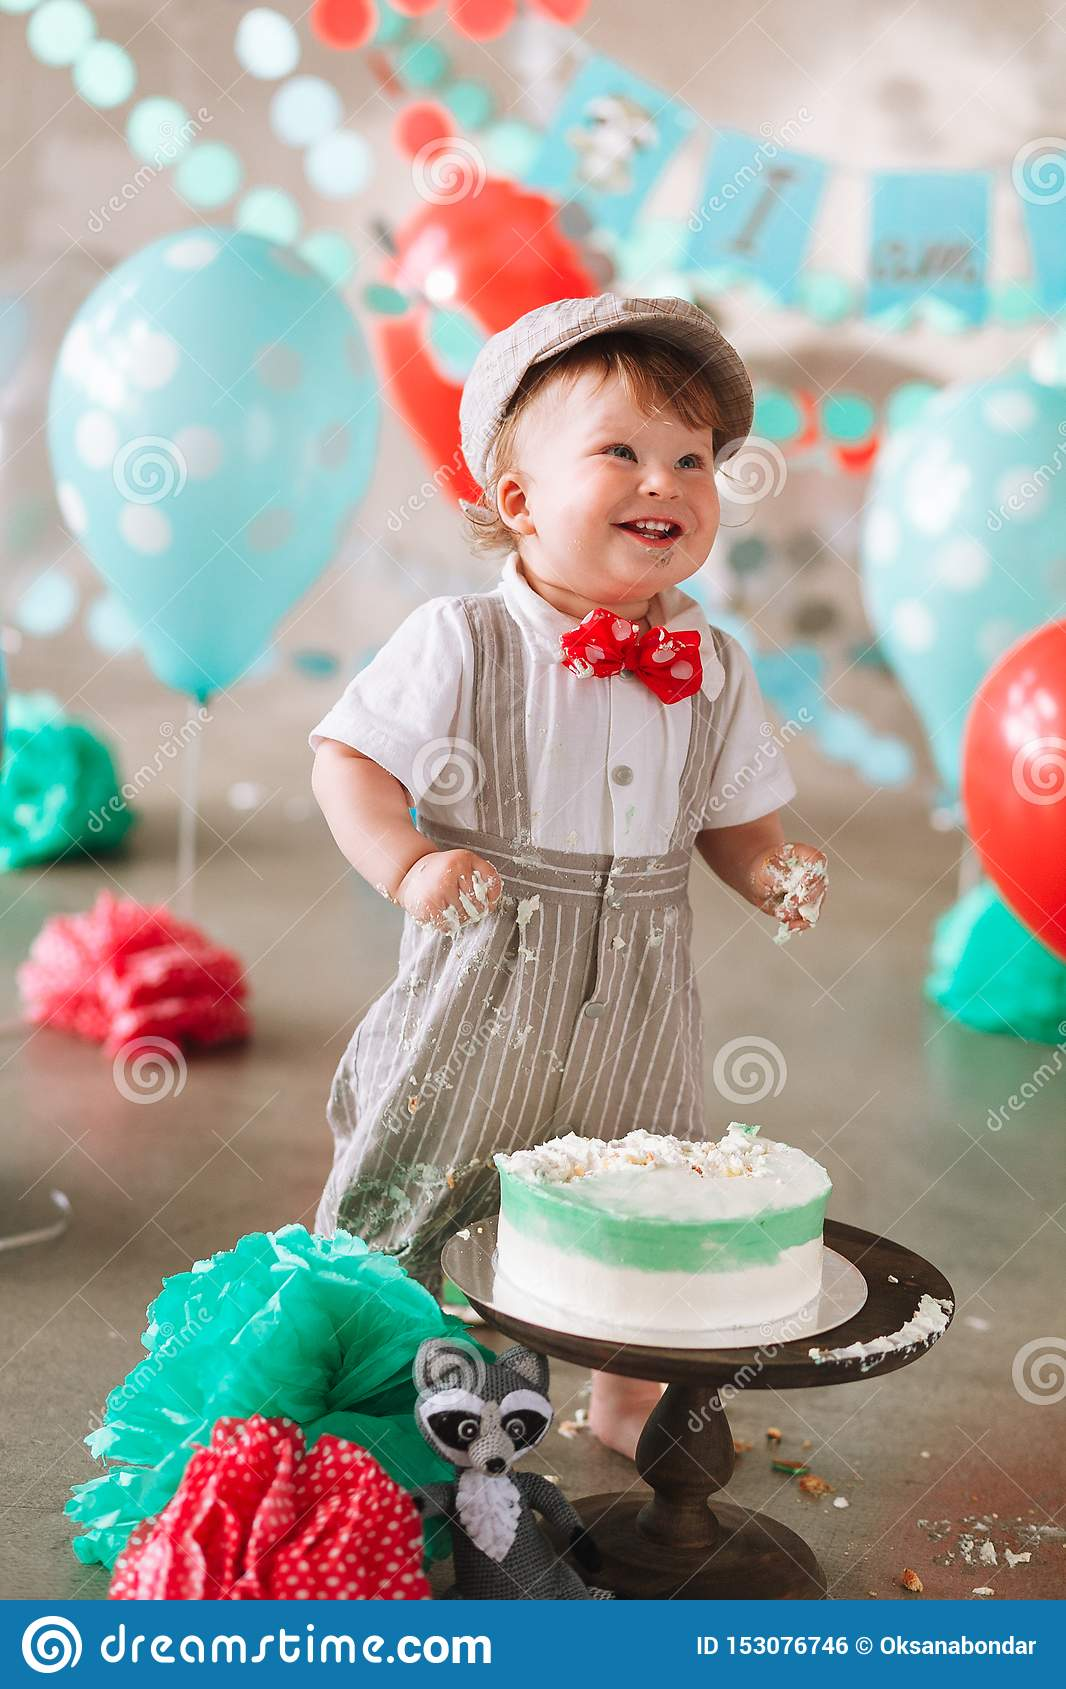 Terrific Funny Baby Boy Laughing In His First Birthday Cake Smash Messy Personalised Birthday Cards Petedlily Jamesorg